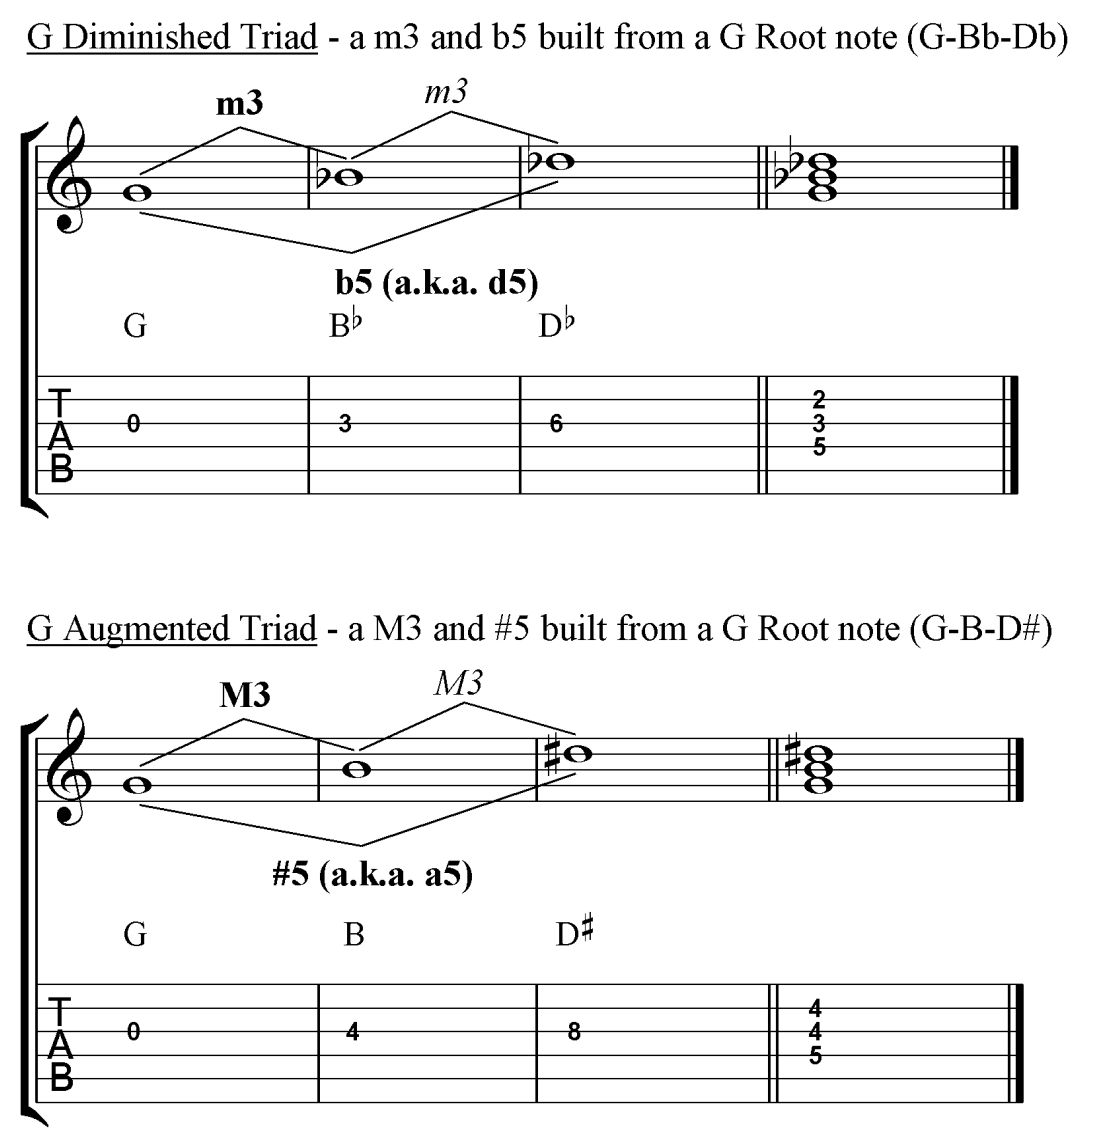 Diminished and Augmented Triads in G